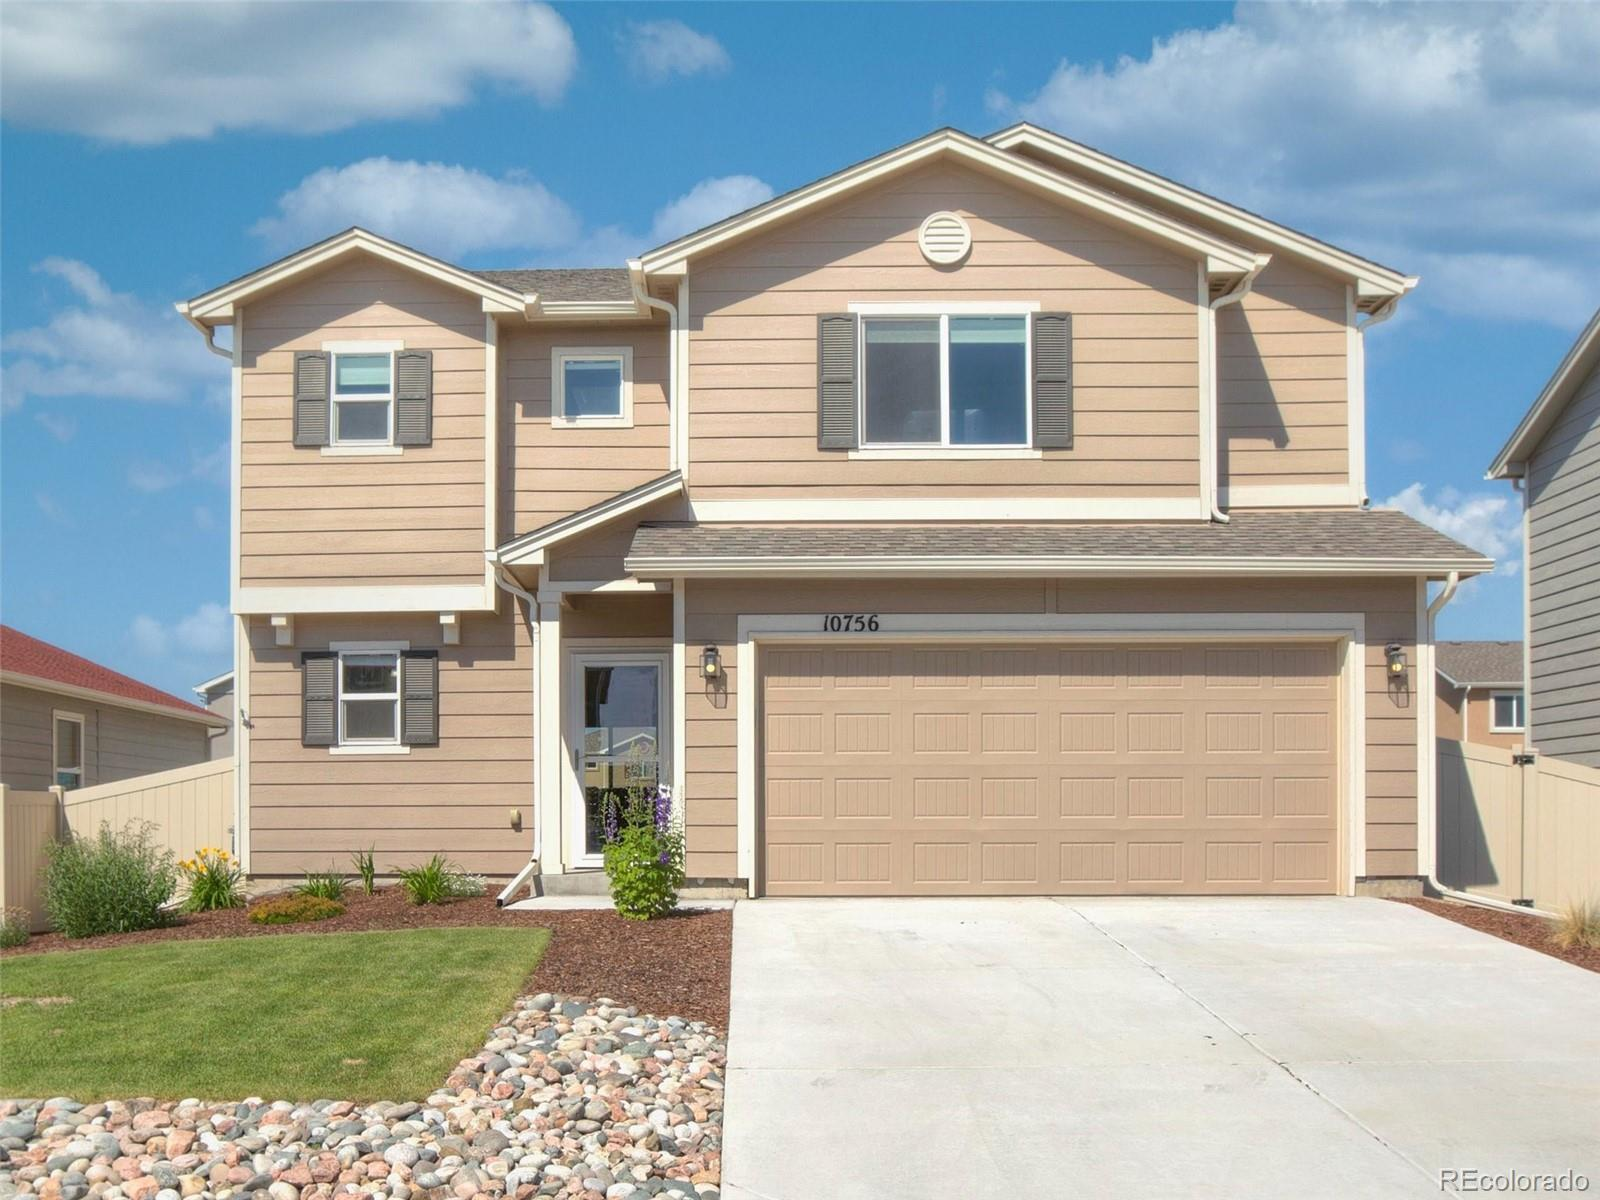 10756 Traders Parkway, Fountain, CO 80817 - #: 4262201